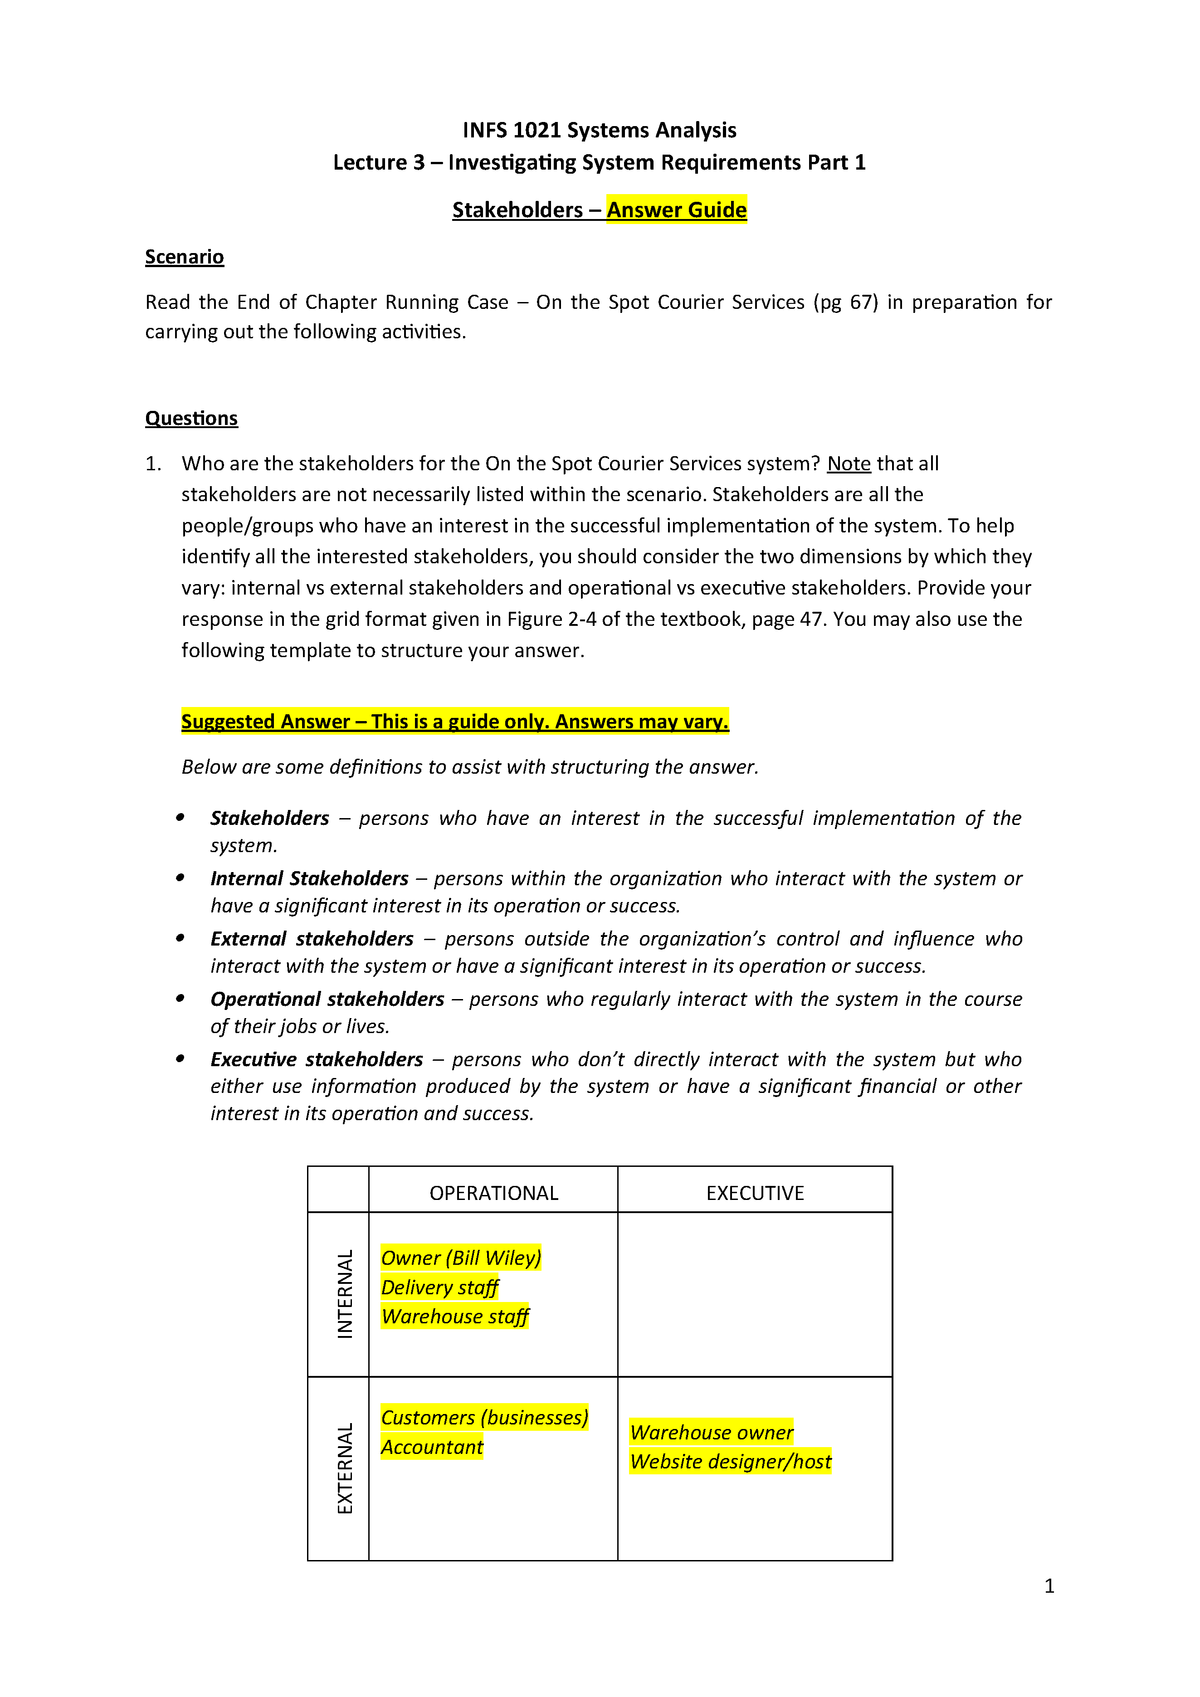 SA Lecture 03 - Activities - Answer Guide - INFS 1021: Systems